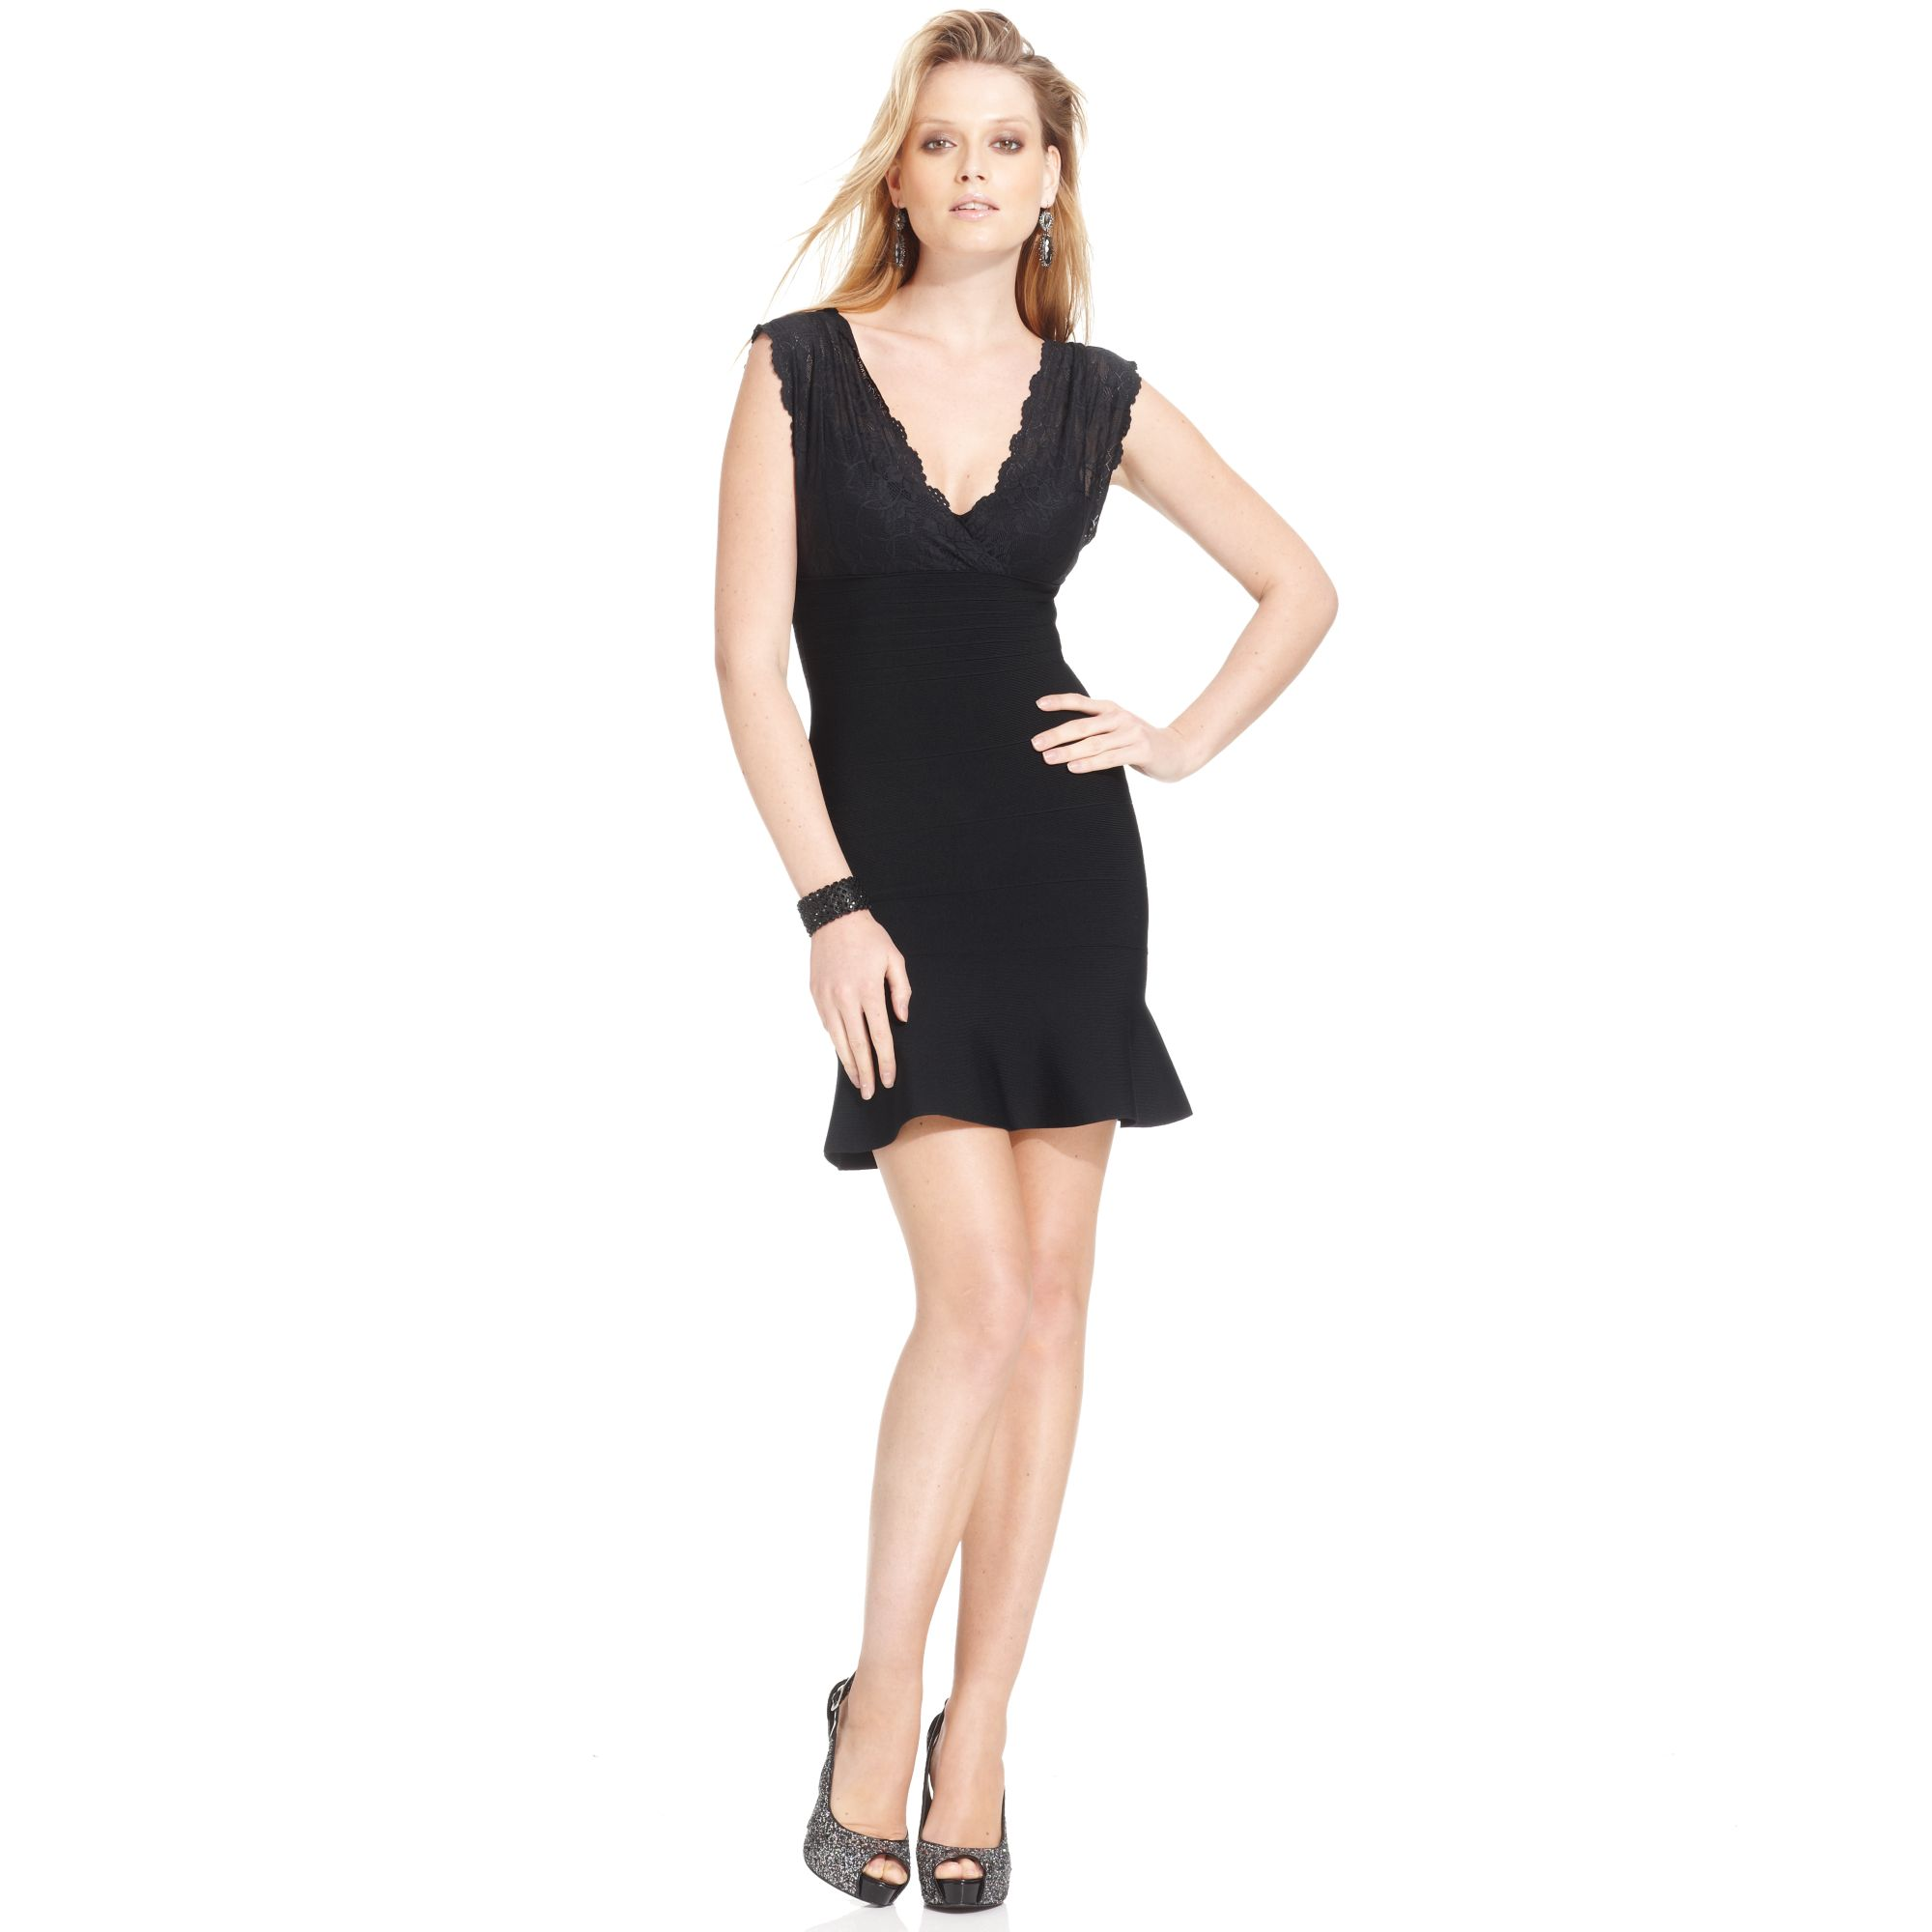 Lyst - Guess Lace Bandage Dress in Black